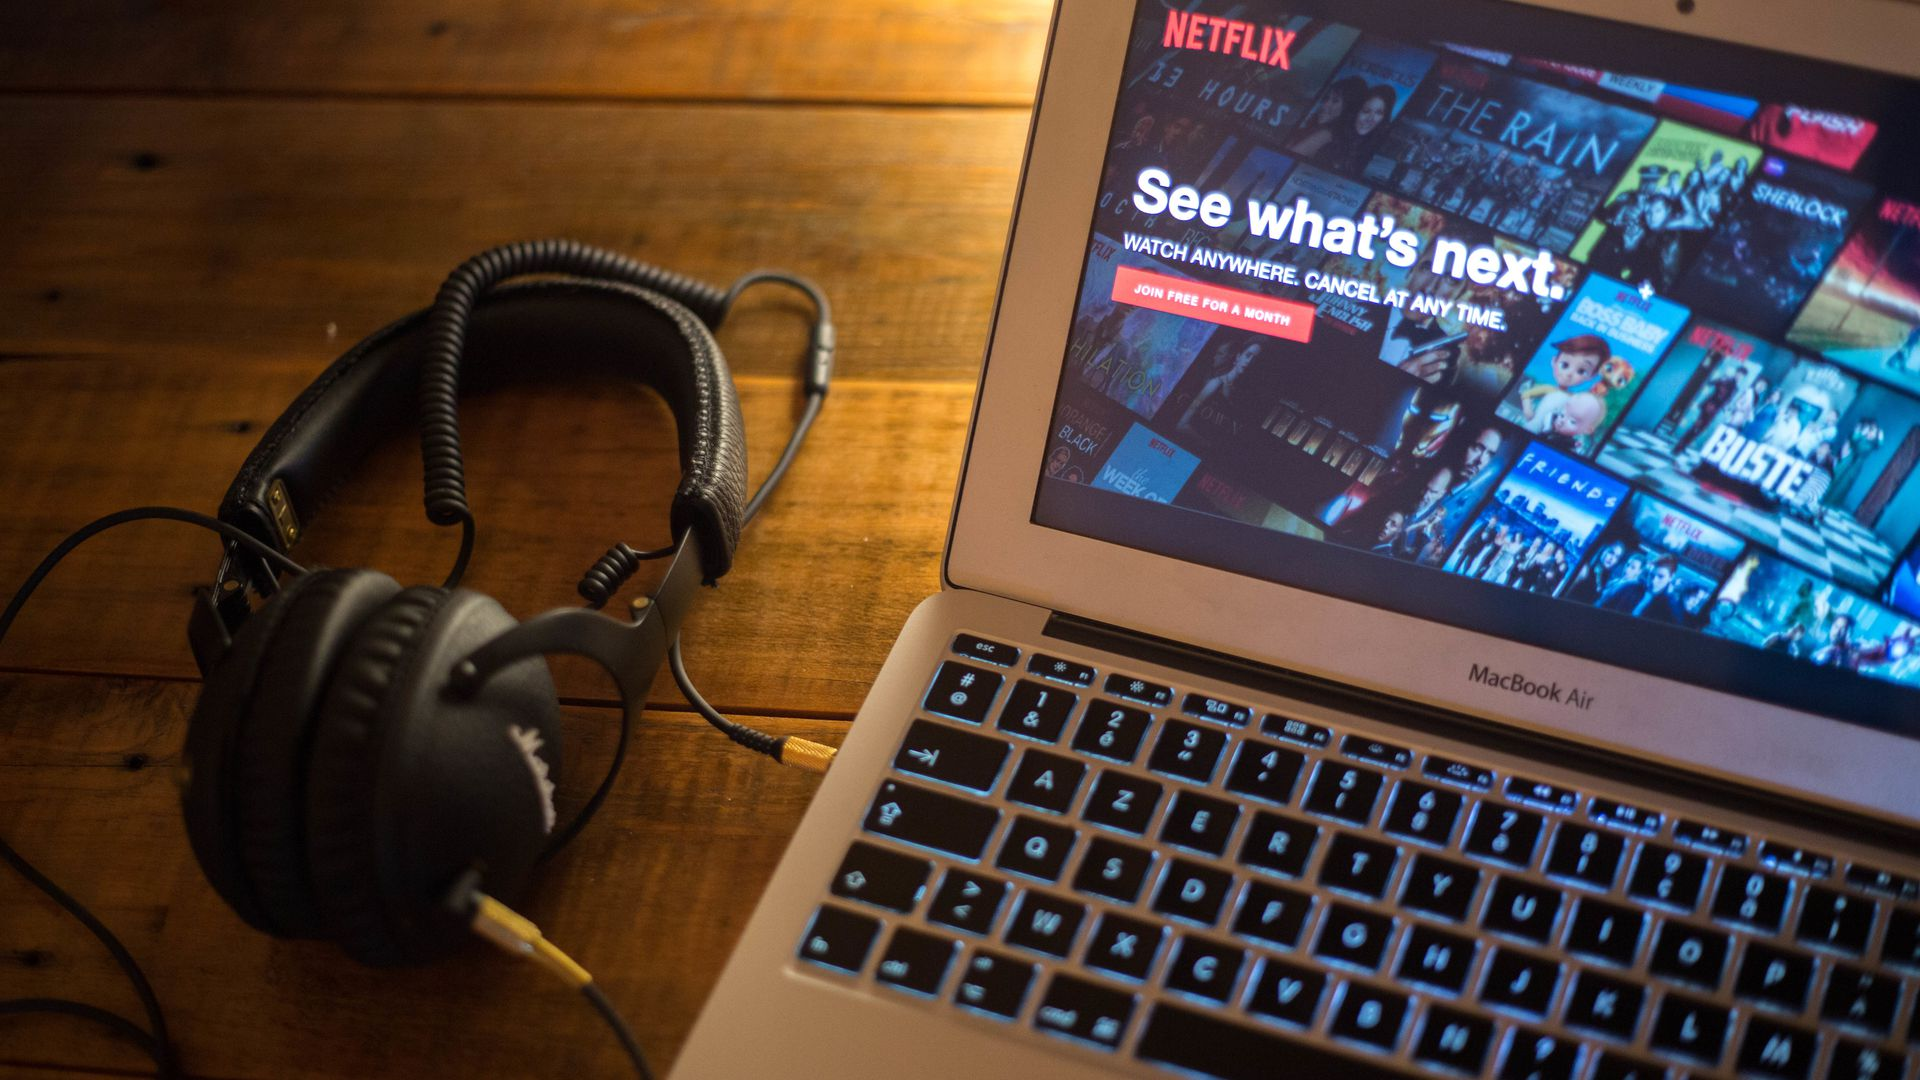 A pair of headphones next to a laptop, with the Netflix homepage pulled up.